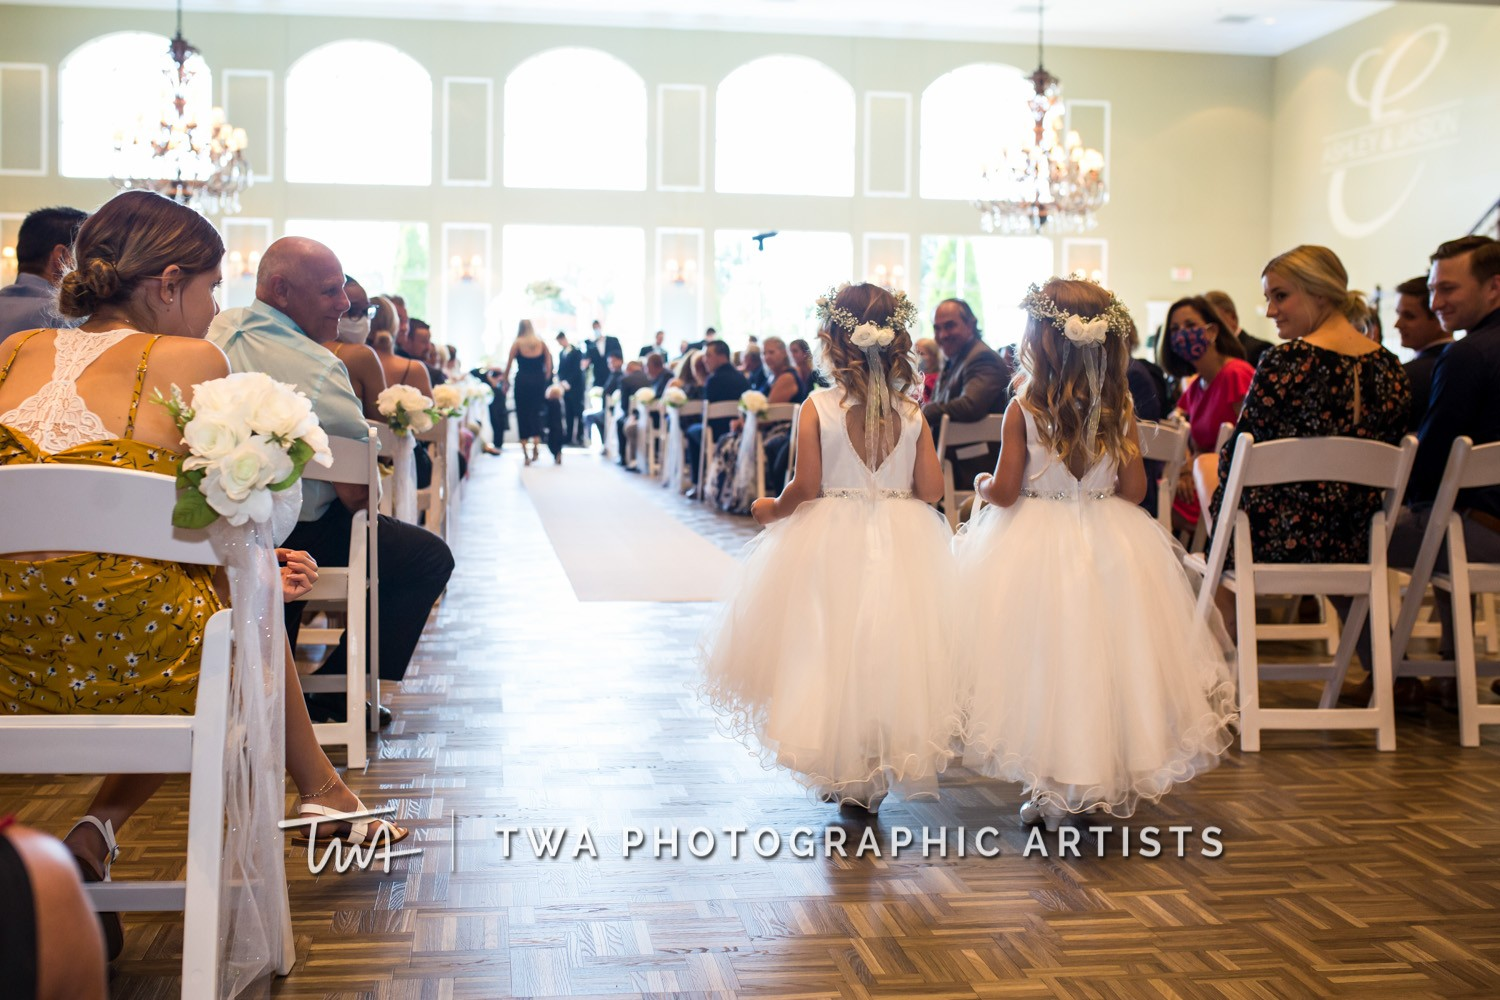 Chicago-Wedding-Photographer-TWA-Photographic-Artists-DiNolfo_s-Banquets_Augustine_Evans_MJ_WK-0584